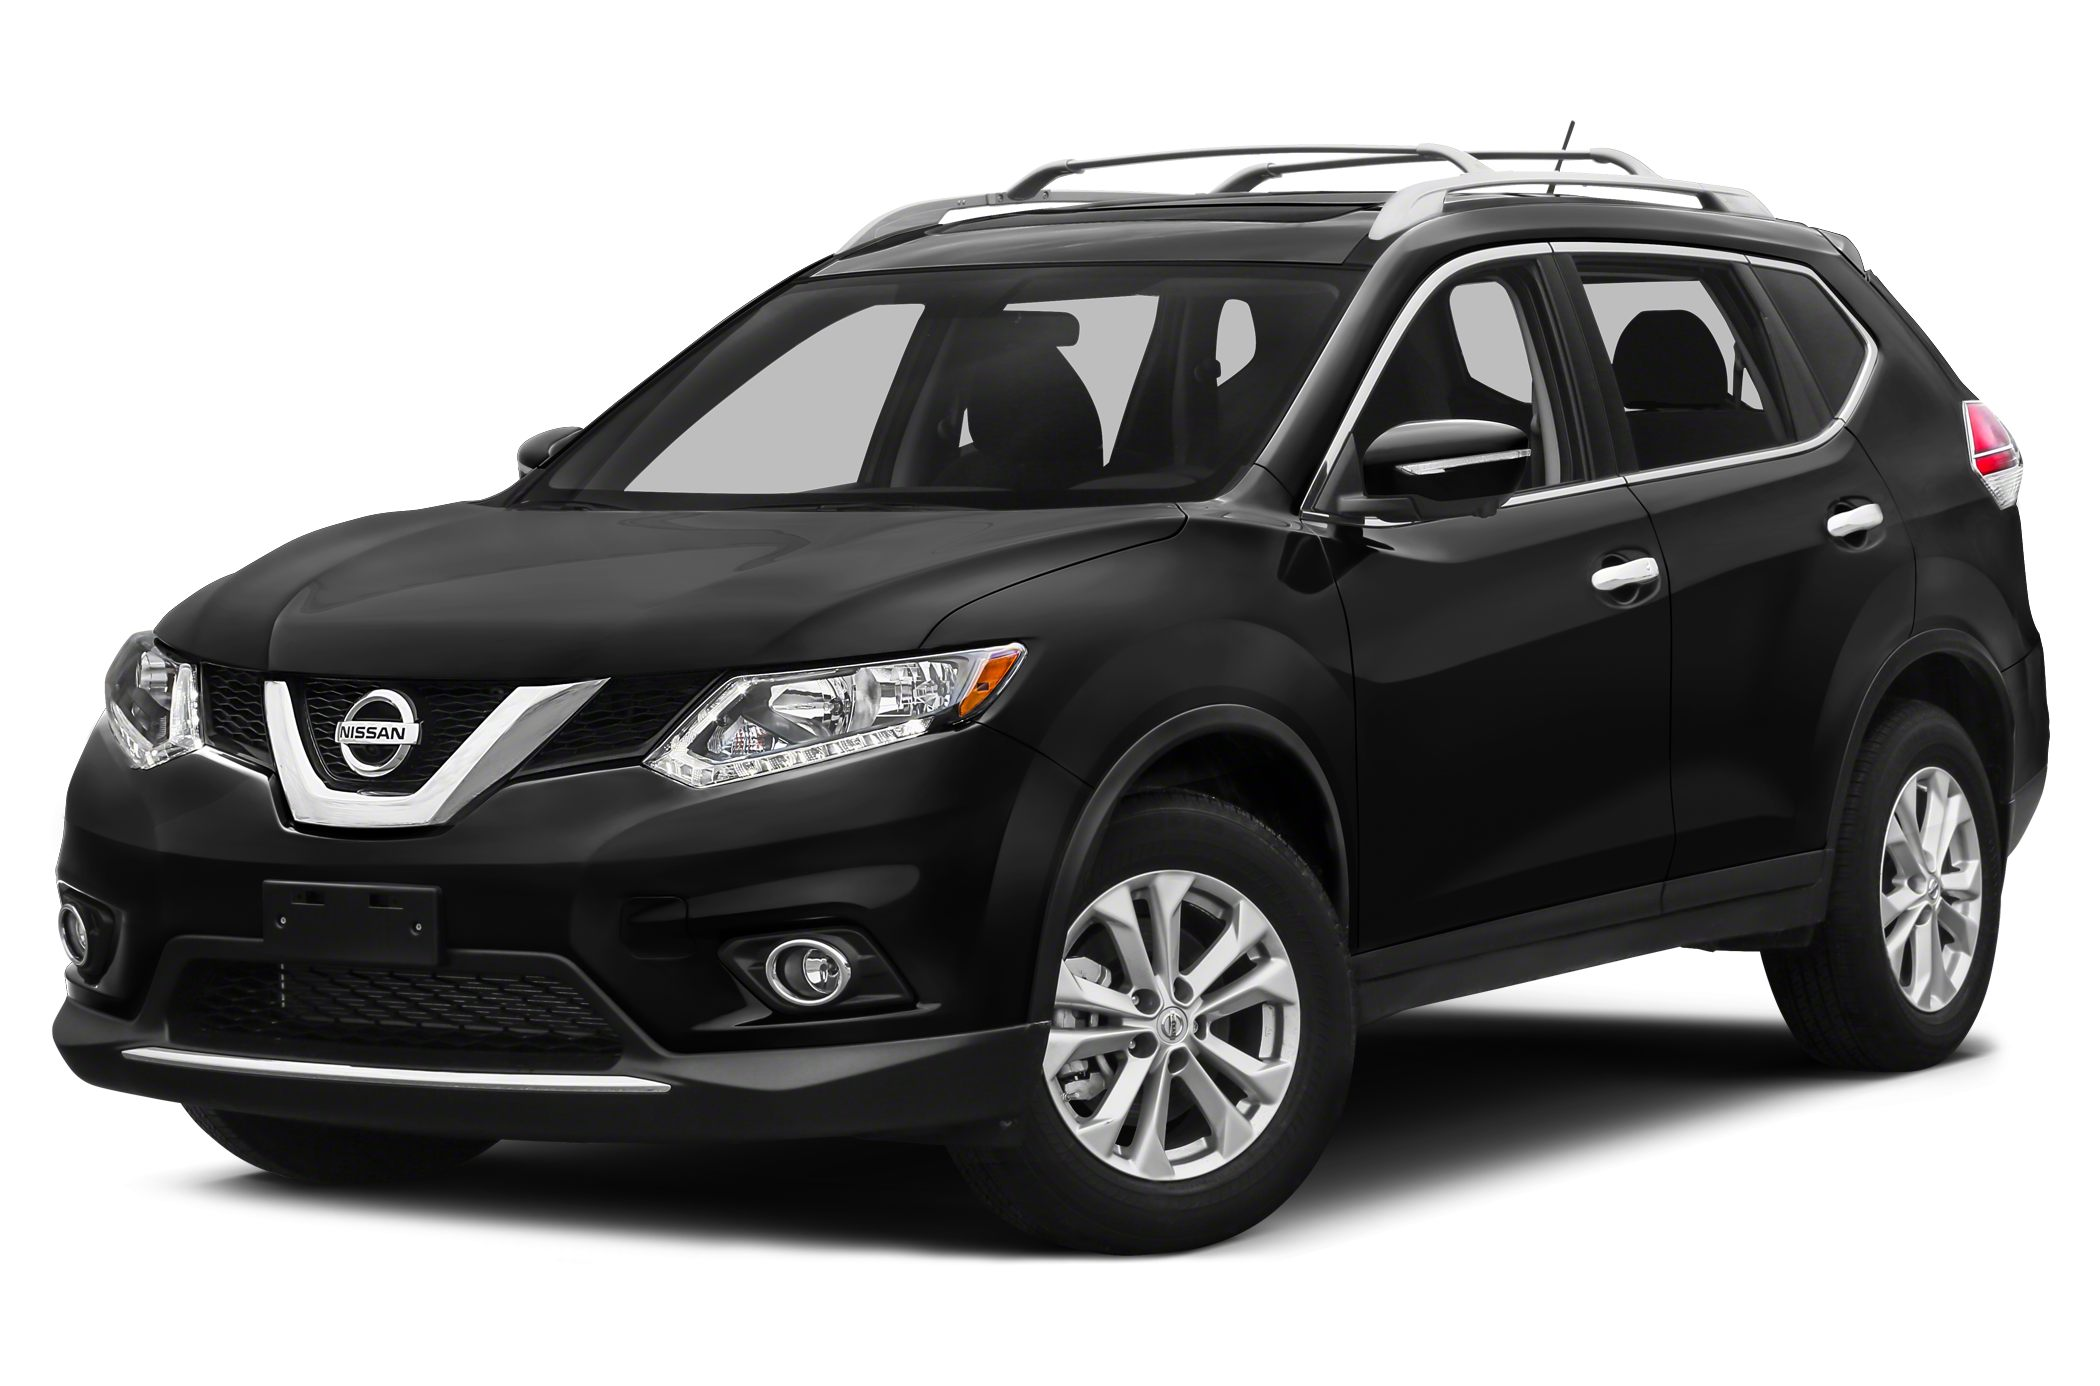 2014 Nissan Rogue SL SUV for sale in Cumberland for $27,997 with 10,114 miles